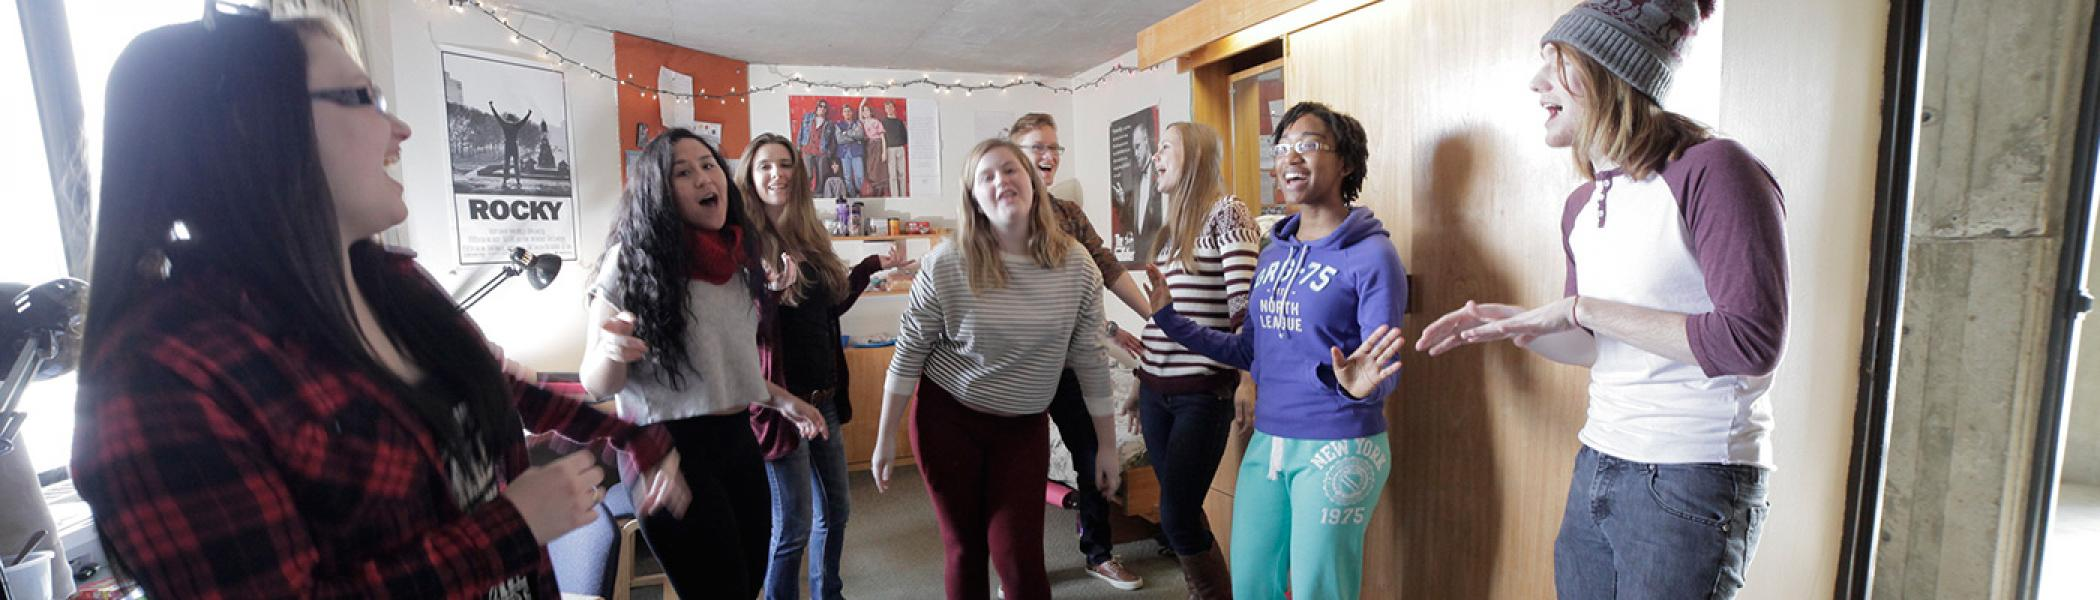 Students singing and dancing in residence room